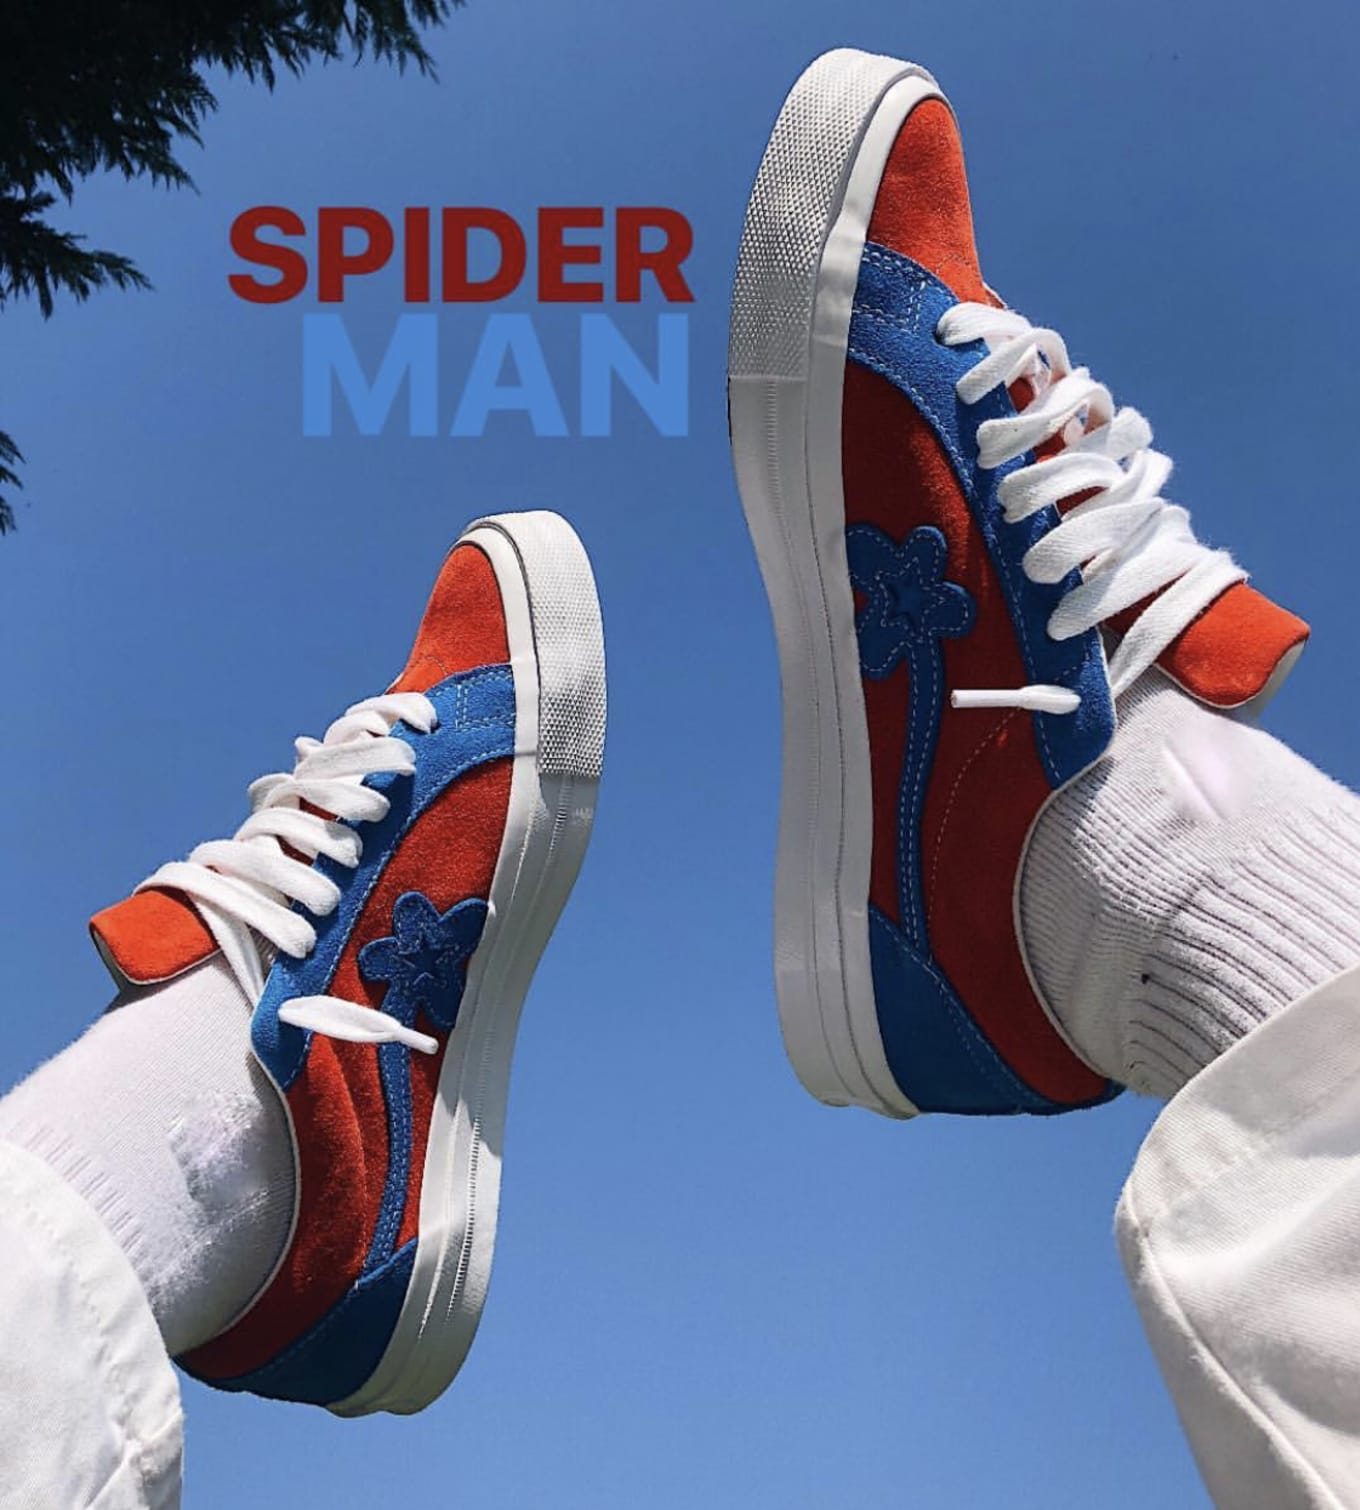 88b65bf47389 Tyler the Creator x Converse Golf le Fleur Blue Red  Spider-Man ...